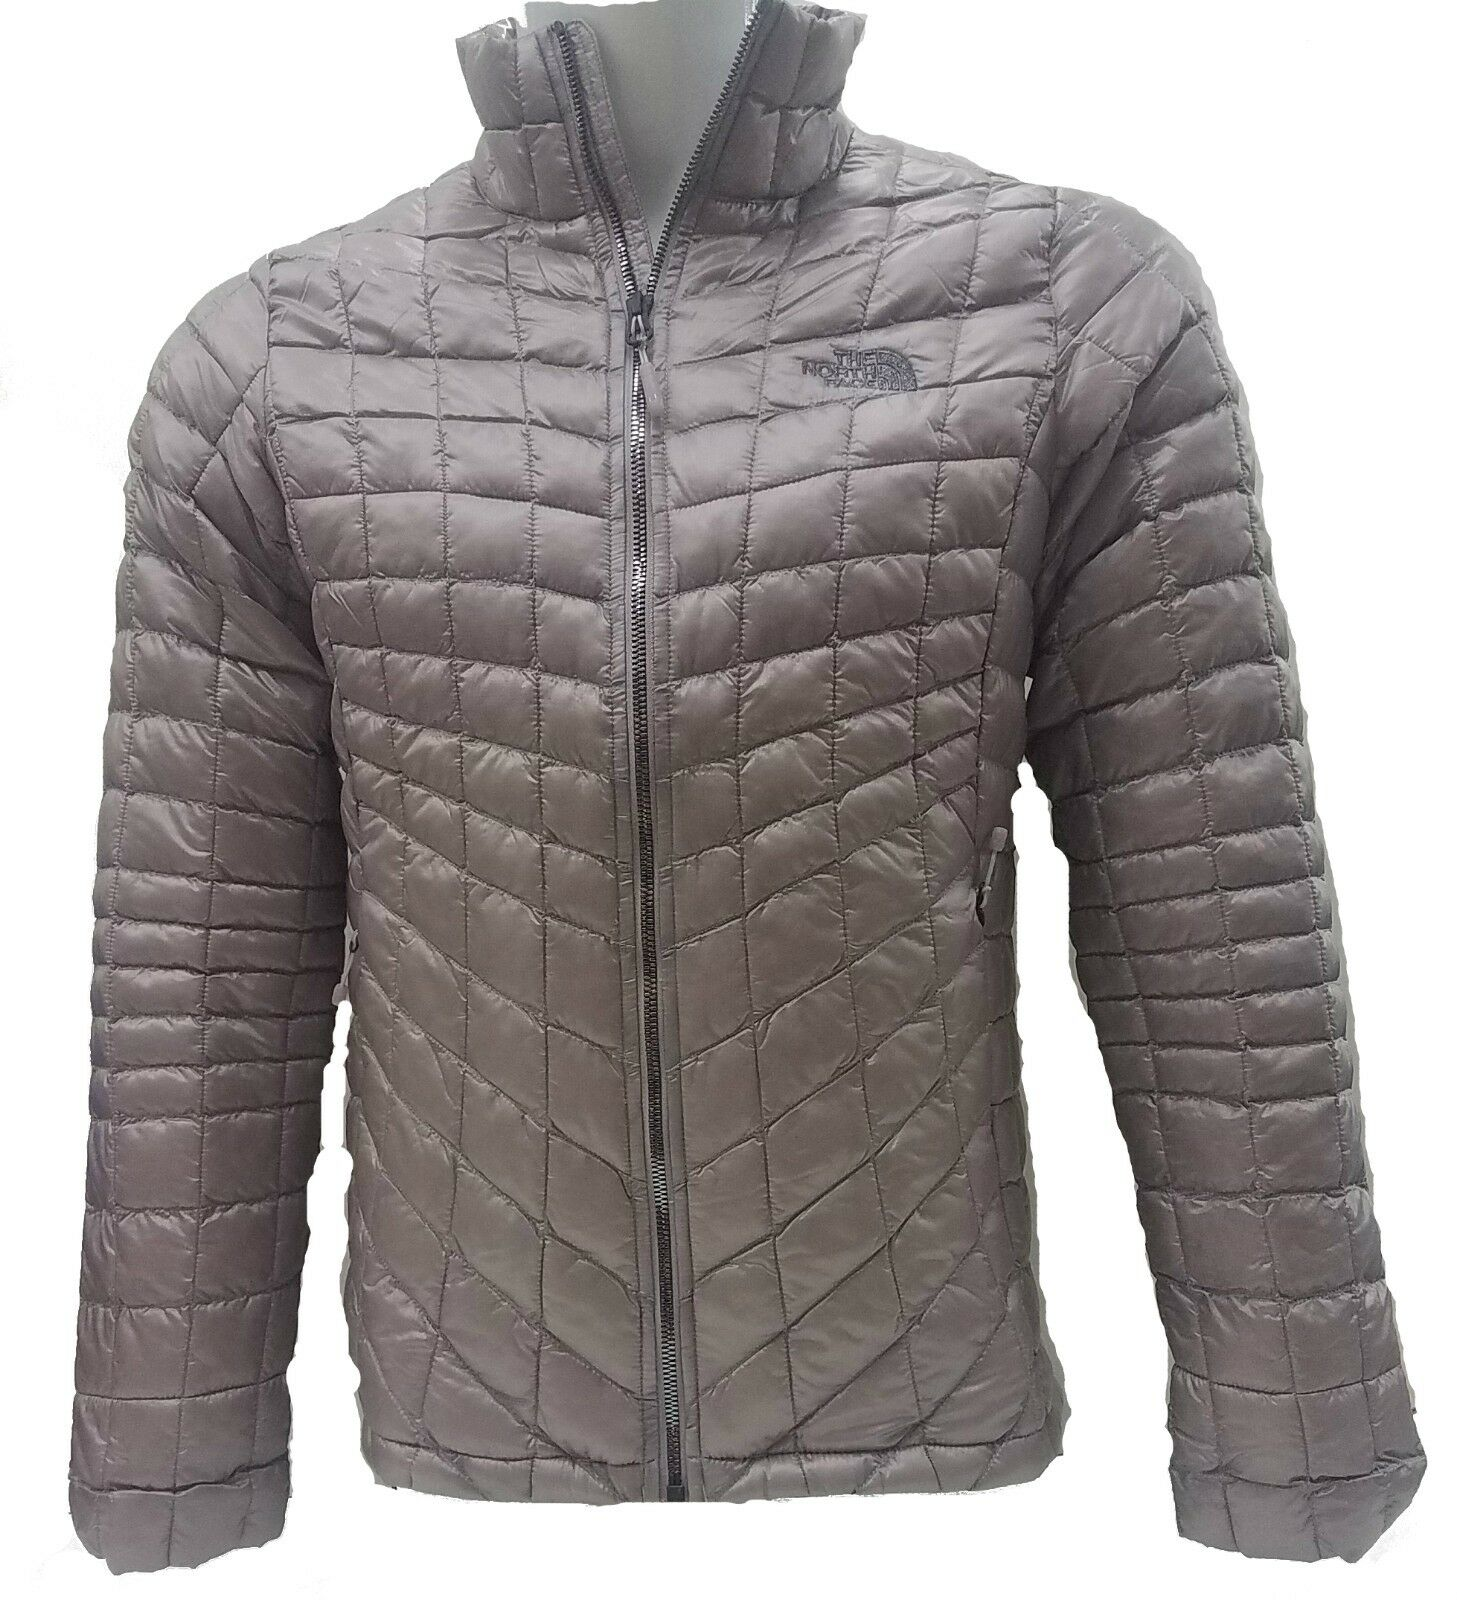 0483ba6c1 The North Face Women's Thermoball Full Zip Jacket - NF00CTL4